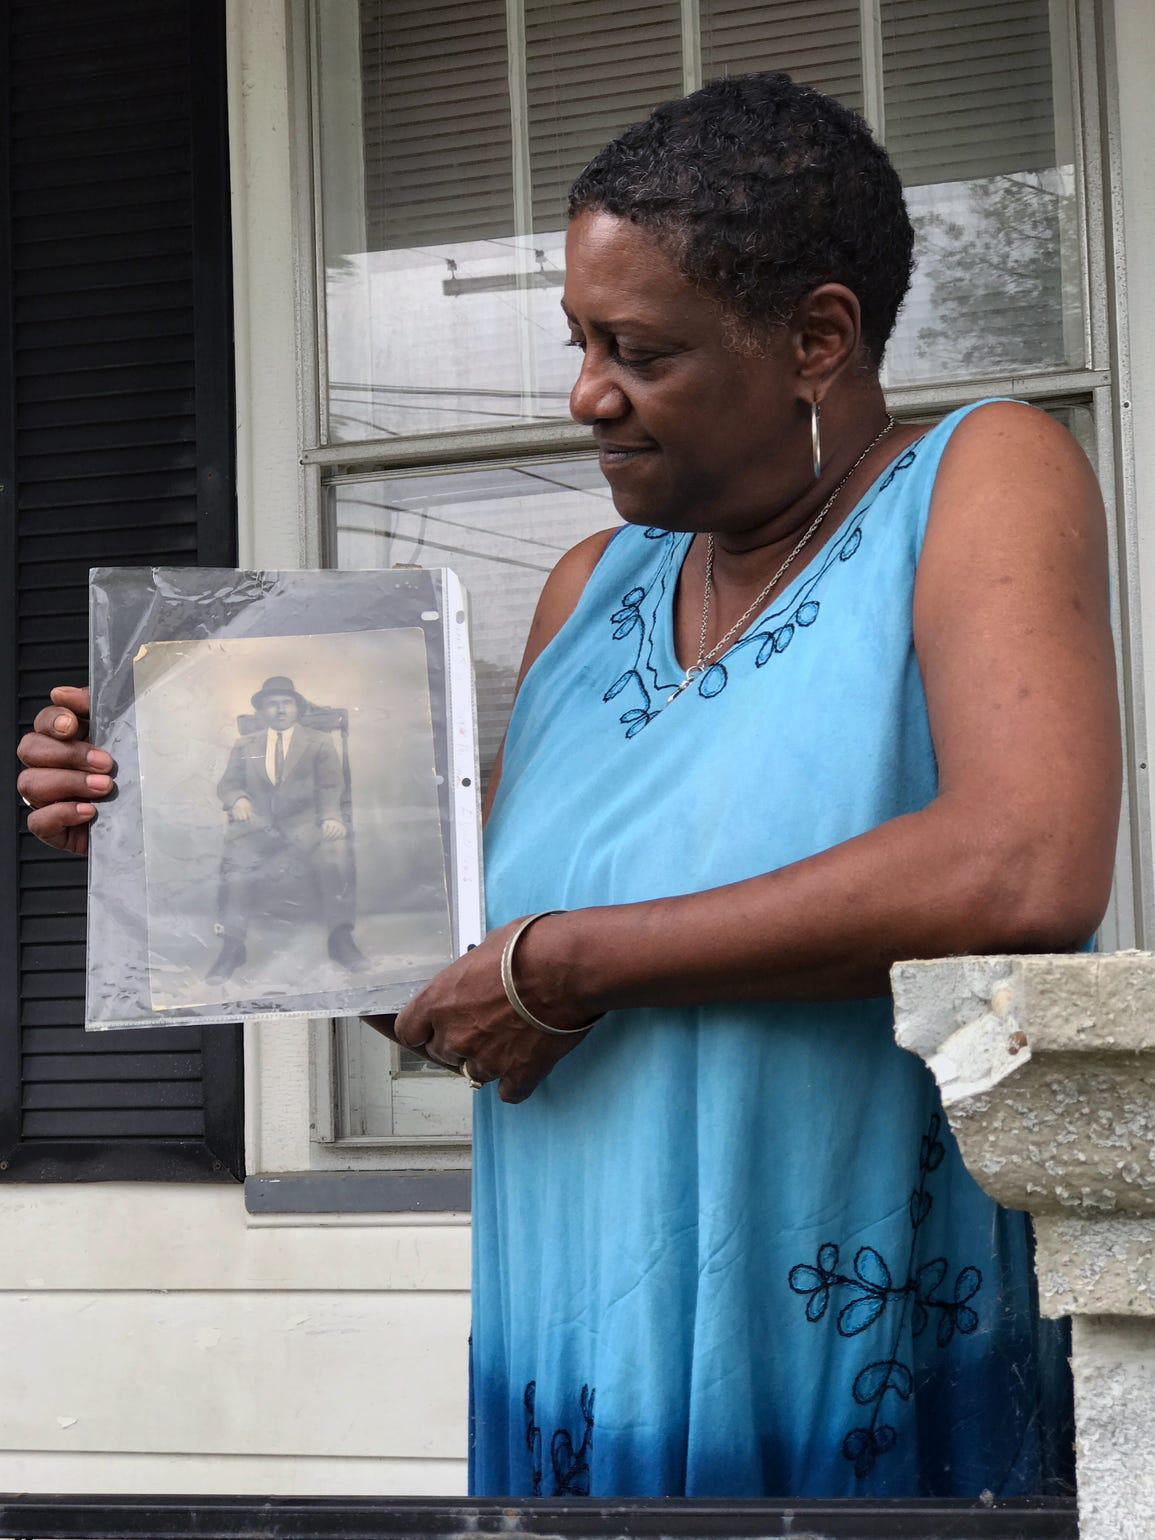 Alrita Pollard Lewis holds up a photo of her grandfather